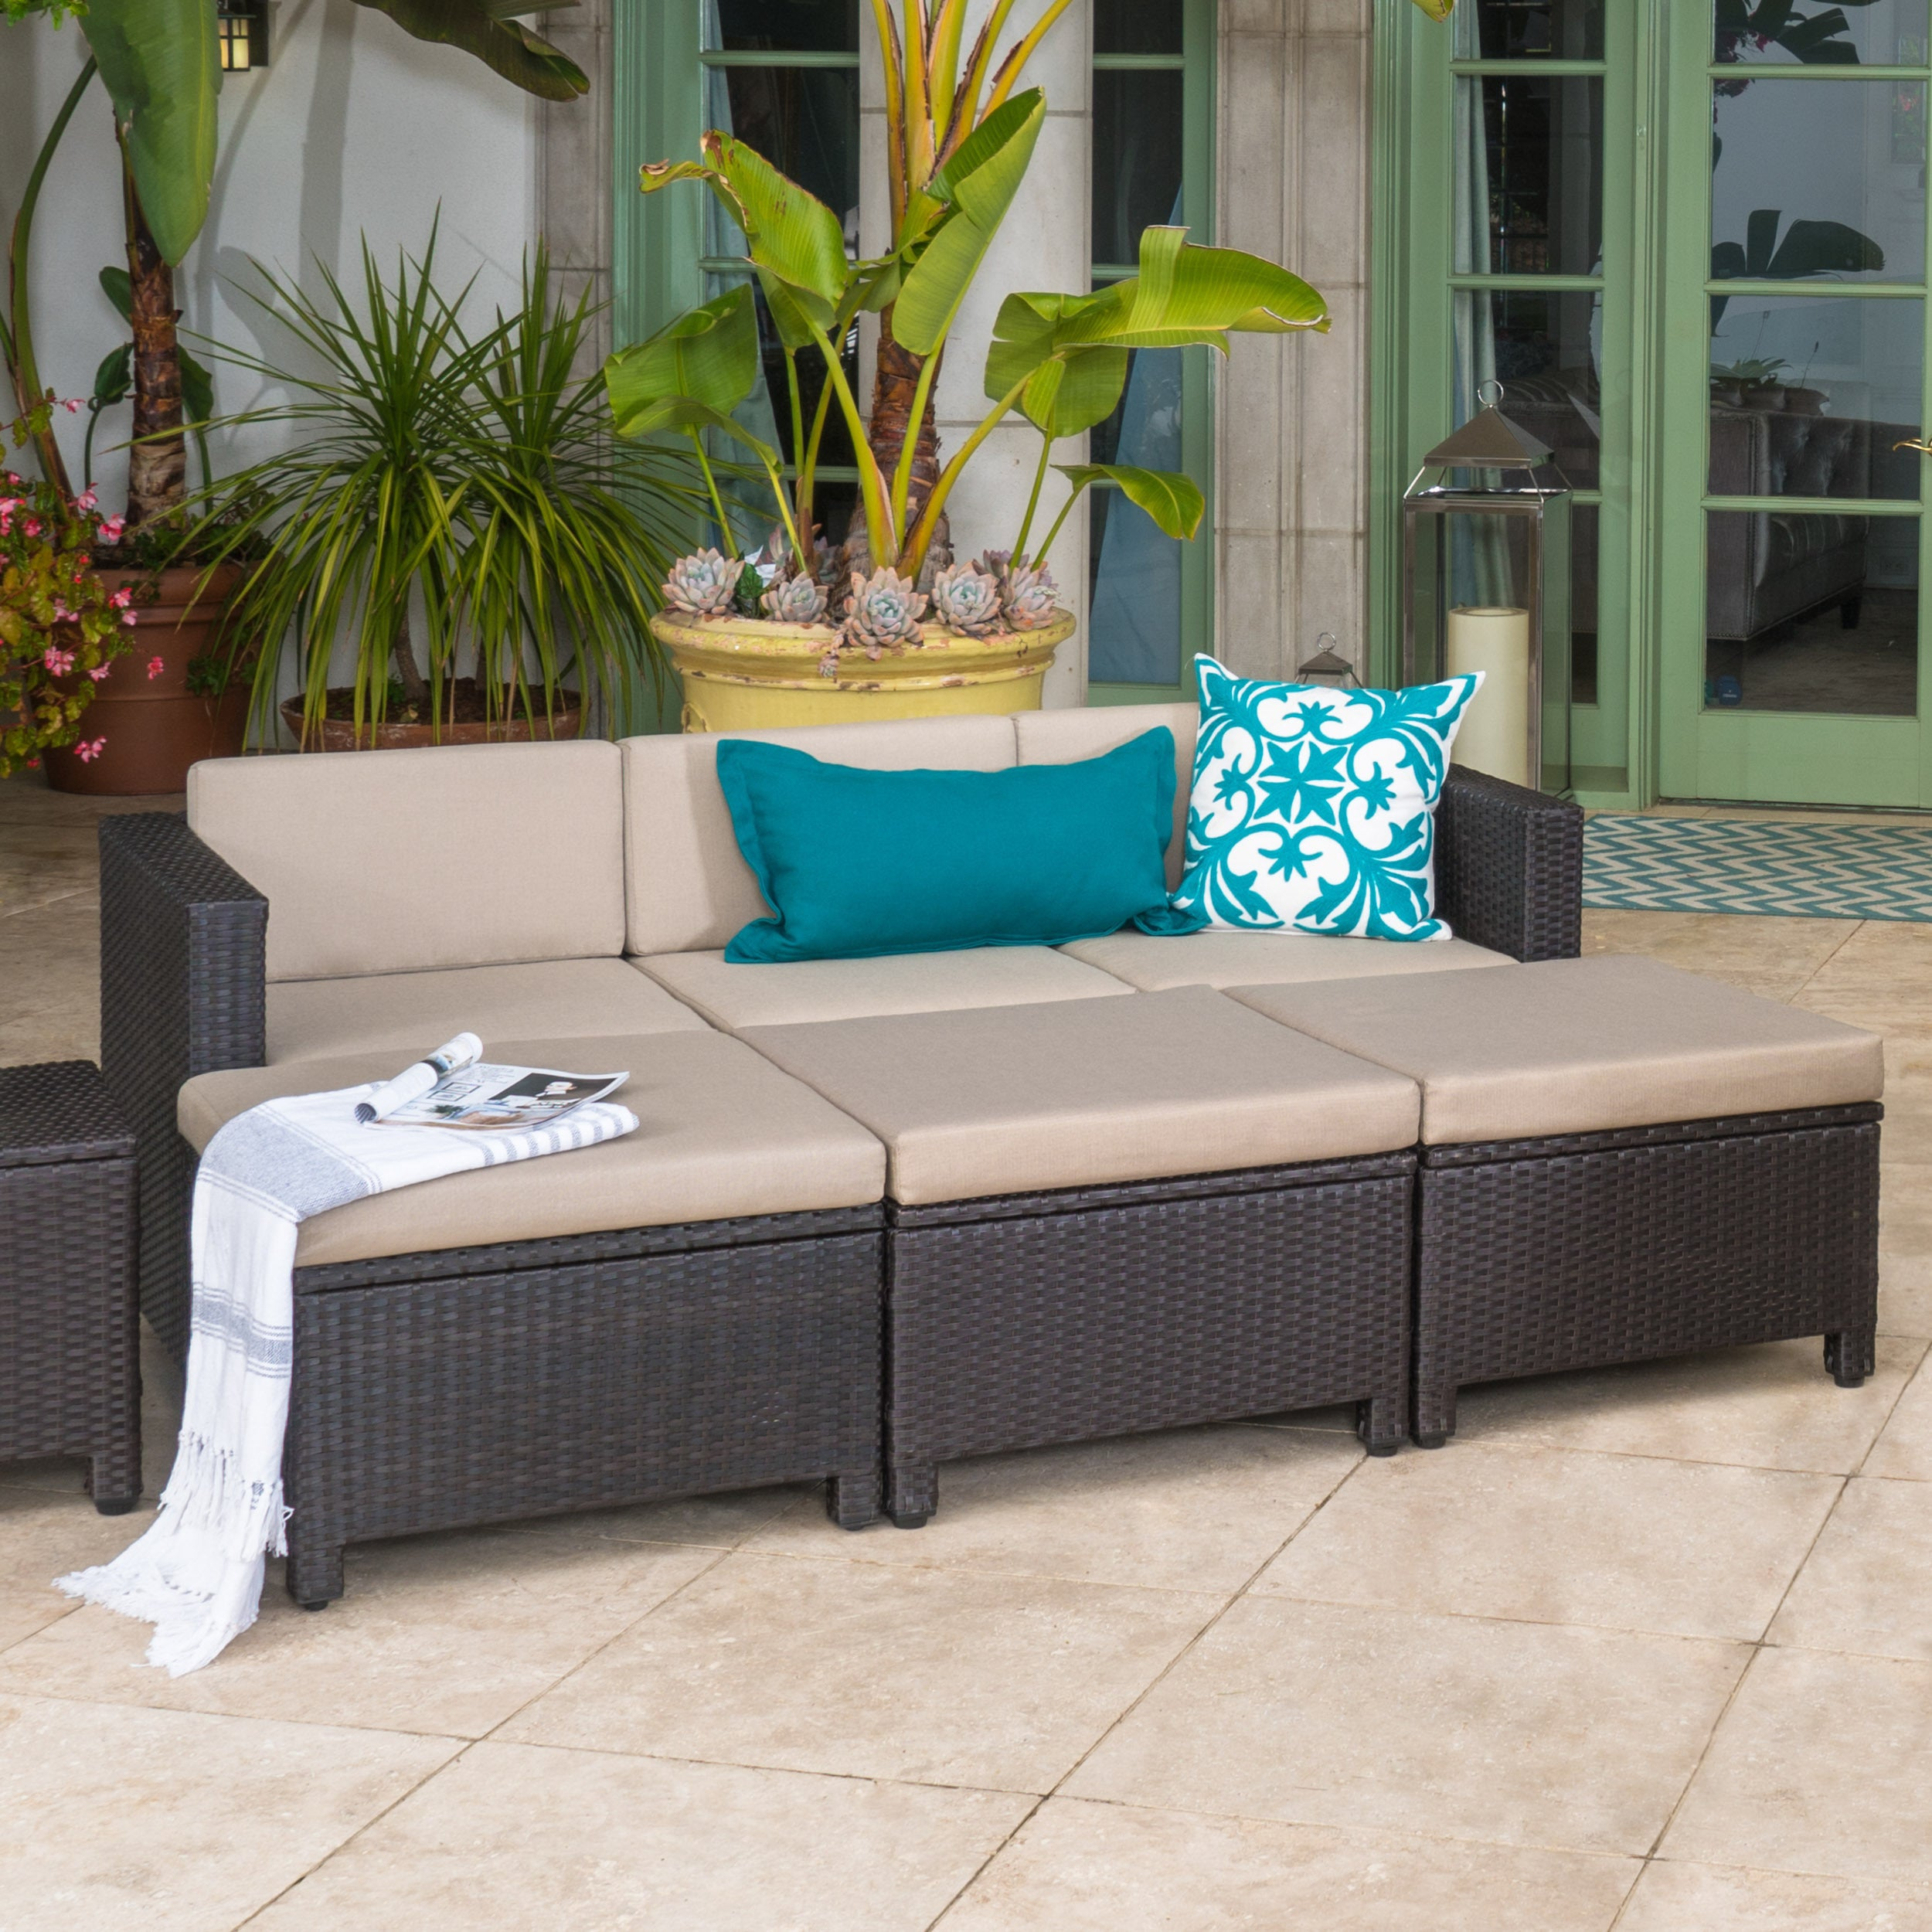 and exteriors famous chaise lounge furniture of outdoor brown wooden daybed bed splendid double canopy patio with